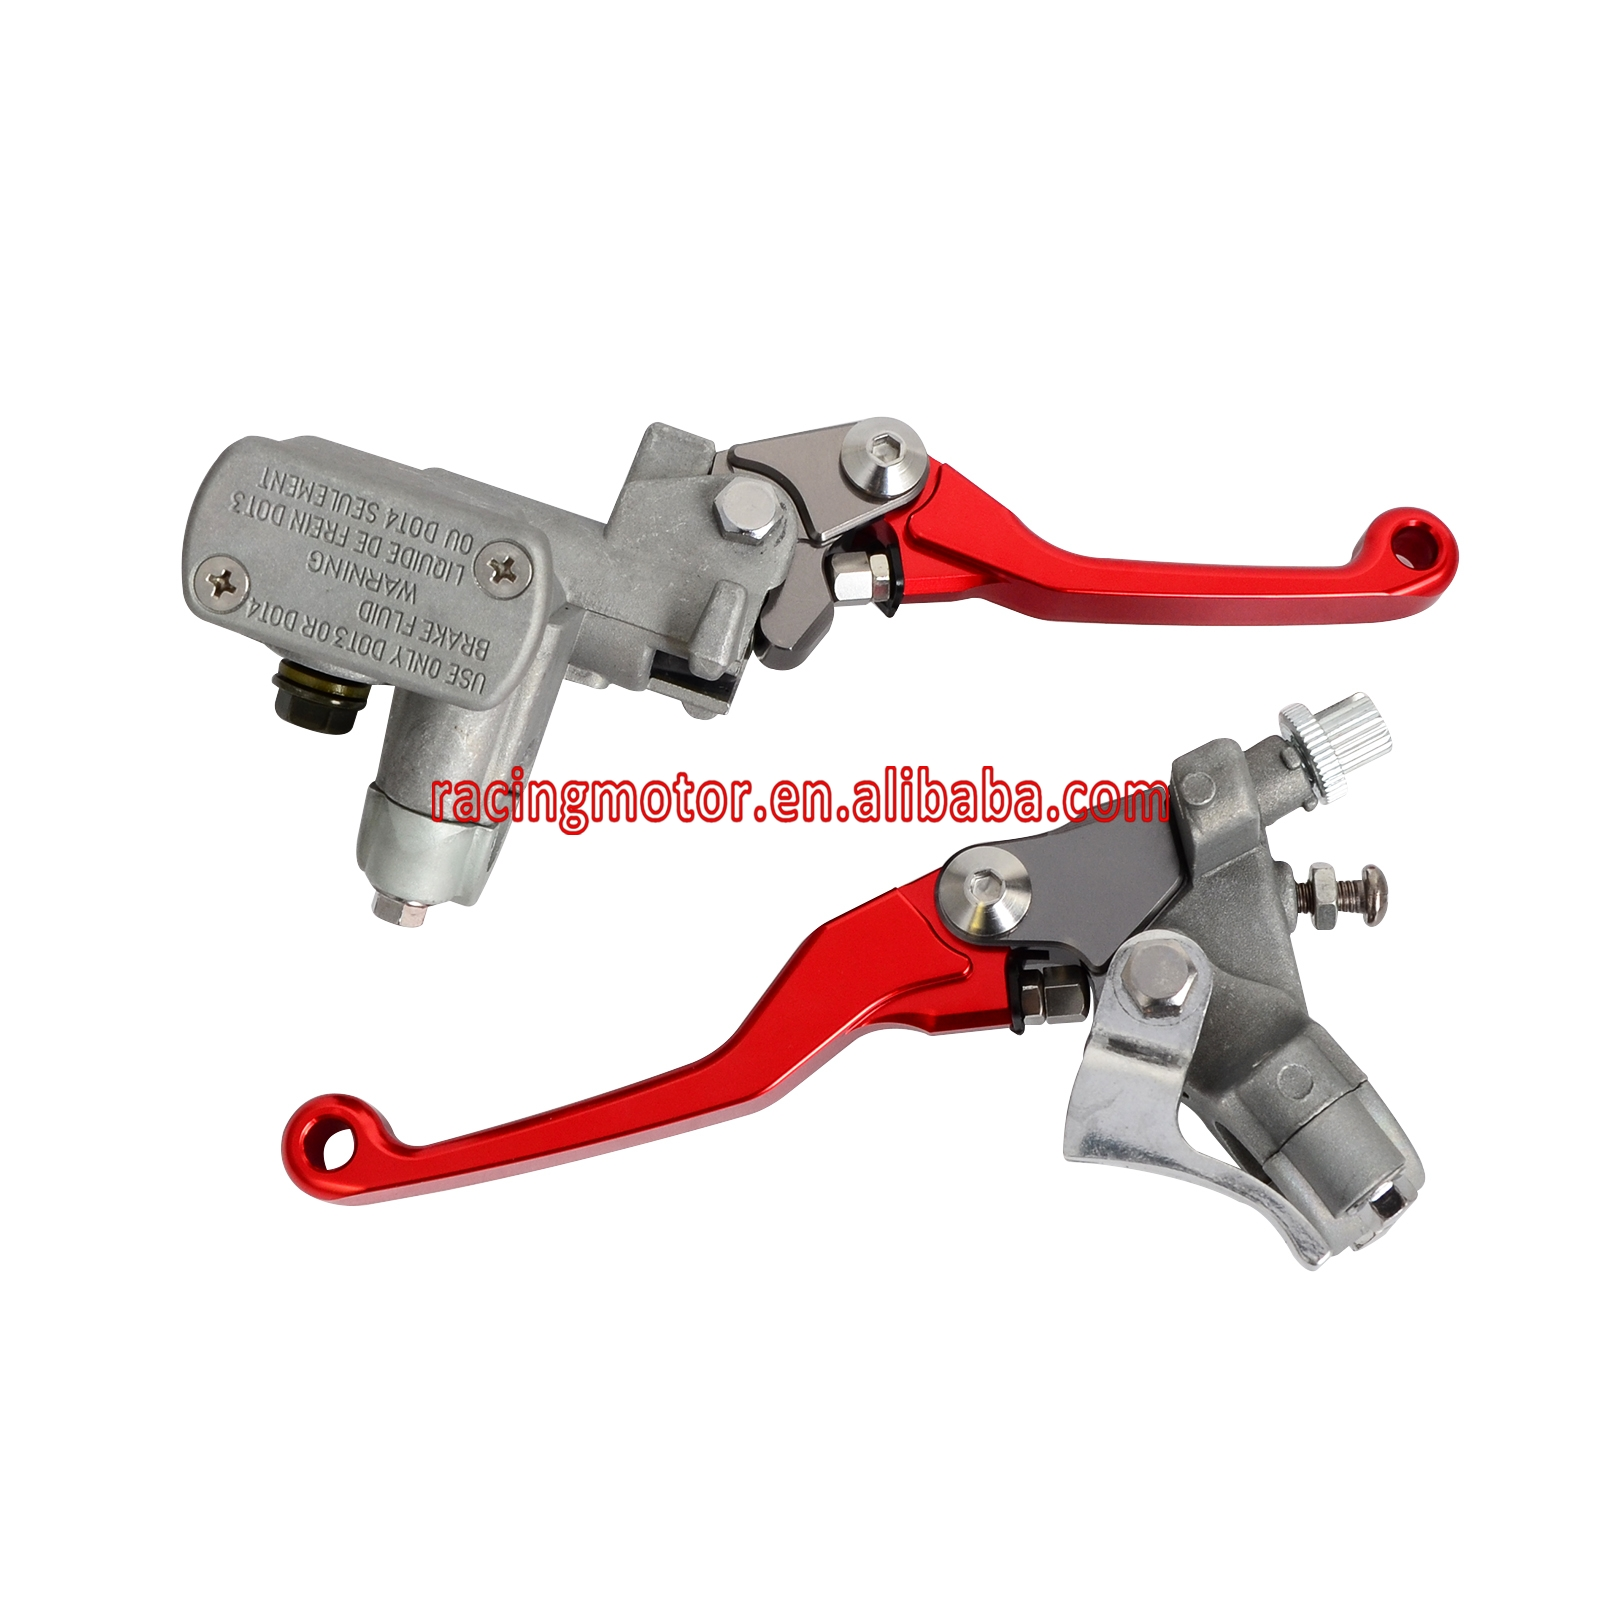 Red Brake Clutch Master Cylinder Lever For Honda CR125R CR250R CR500R CRF150R CRF250R CRF250X CRF450R CRF450X NEW 7 8 lever brake clutch master cylinder set reservoir for honda crf150r crf250x crf250r crf450r crf450x crf230f sl230 xr250